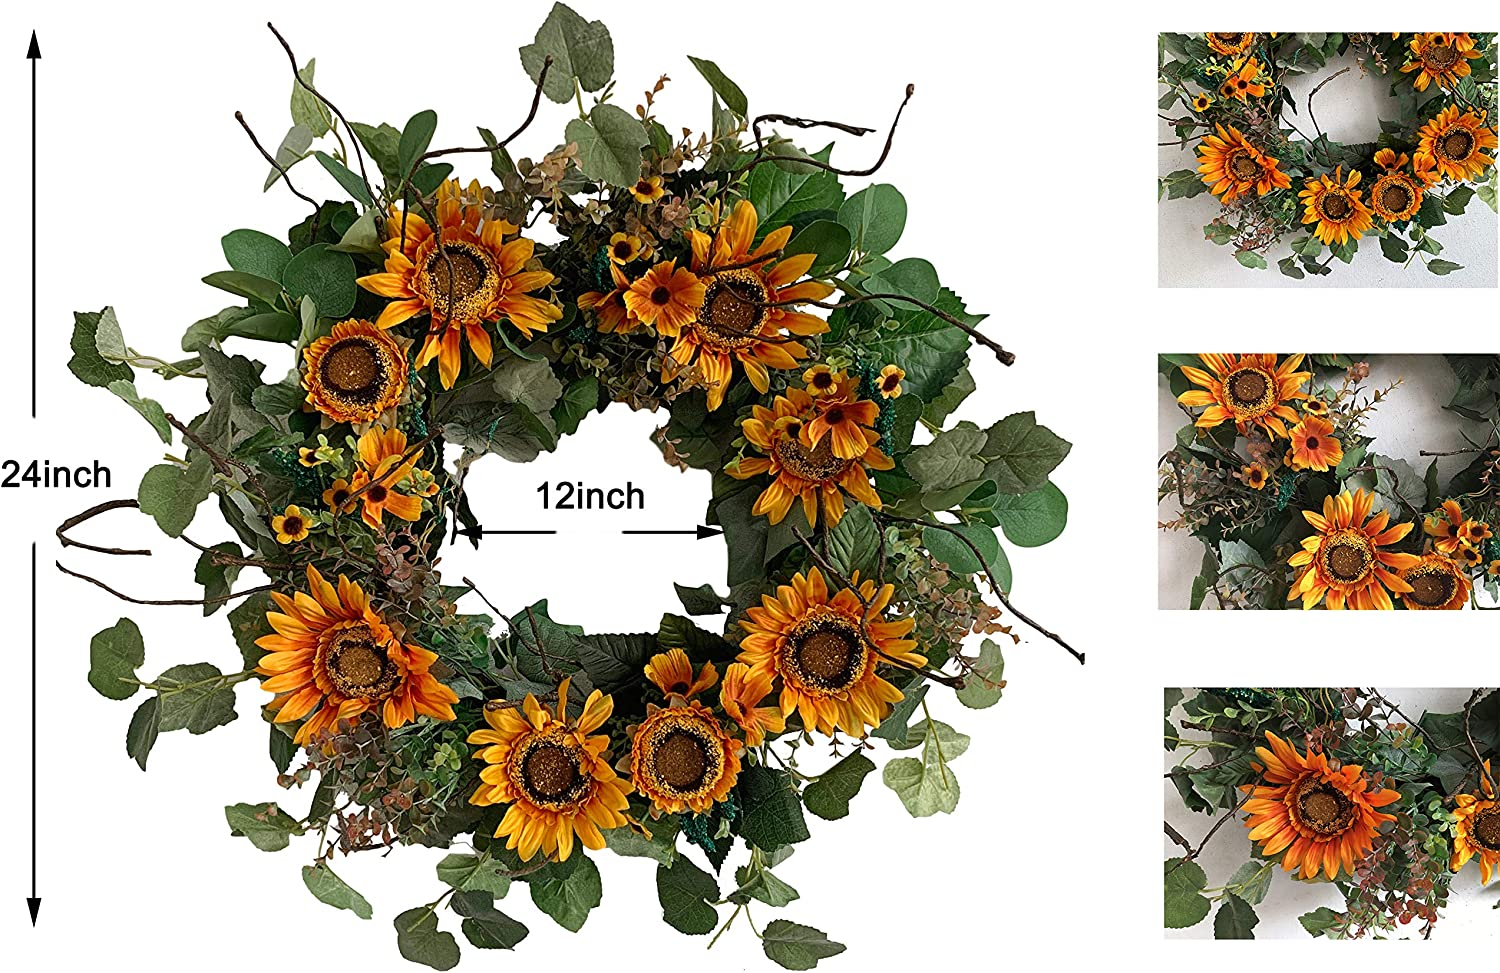 Spring Summer Floral Wreath on Grapevine Base for Front Door Wall Window Welcome Decor 24 inch Vintage Golden Yellow Huashen Sunflower Wreath with Green Leaves